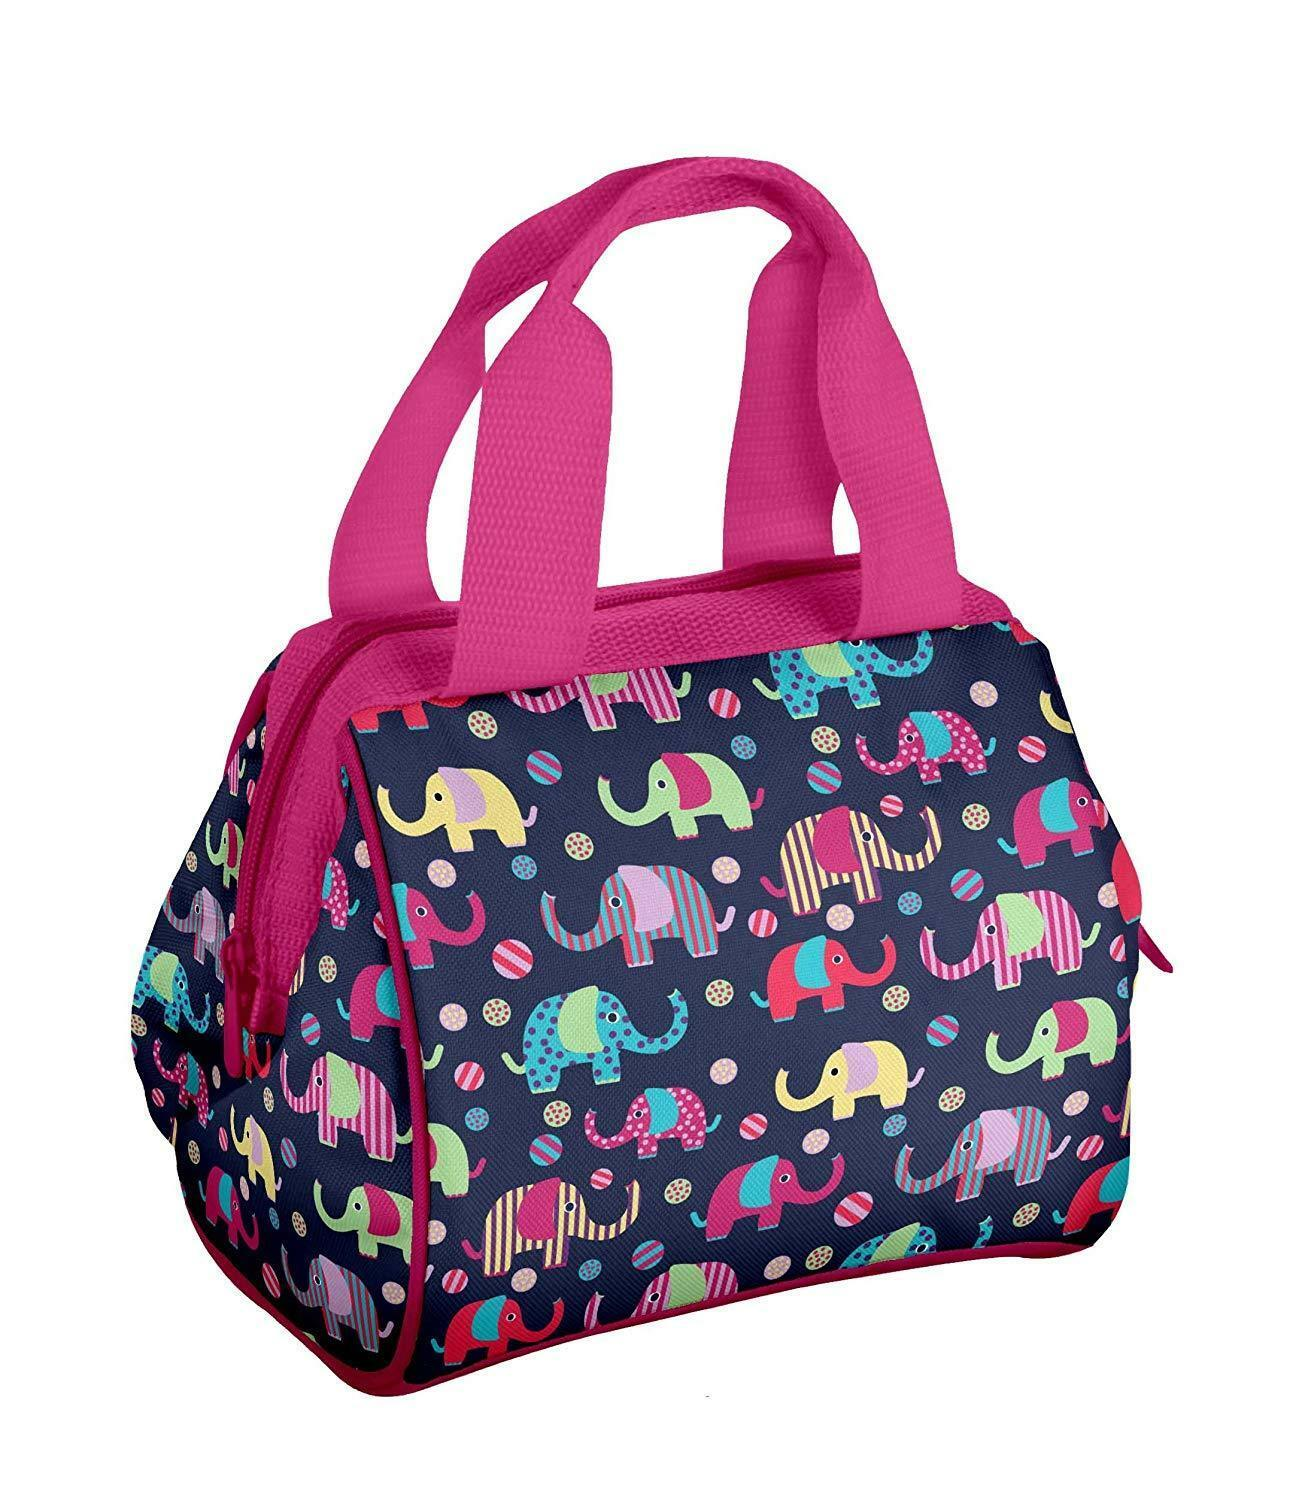 New Fit & Fresh Insulated Elephant Lunch Box Pink & Blue